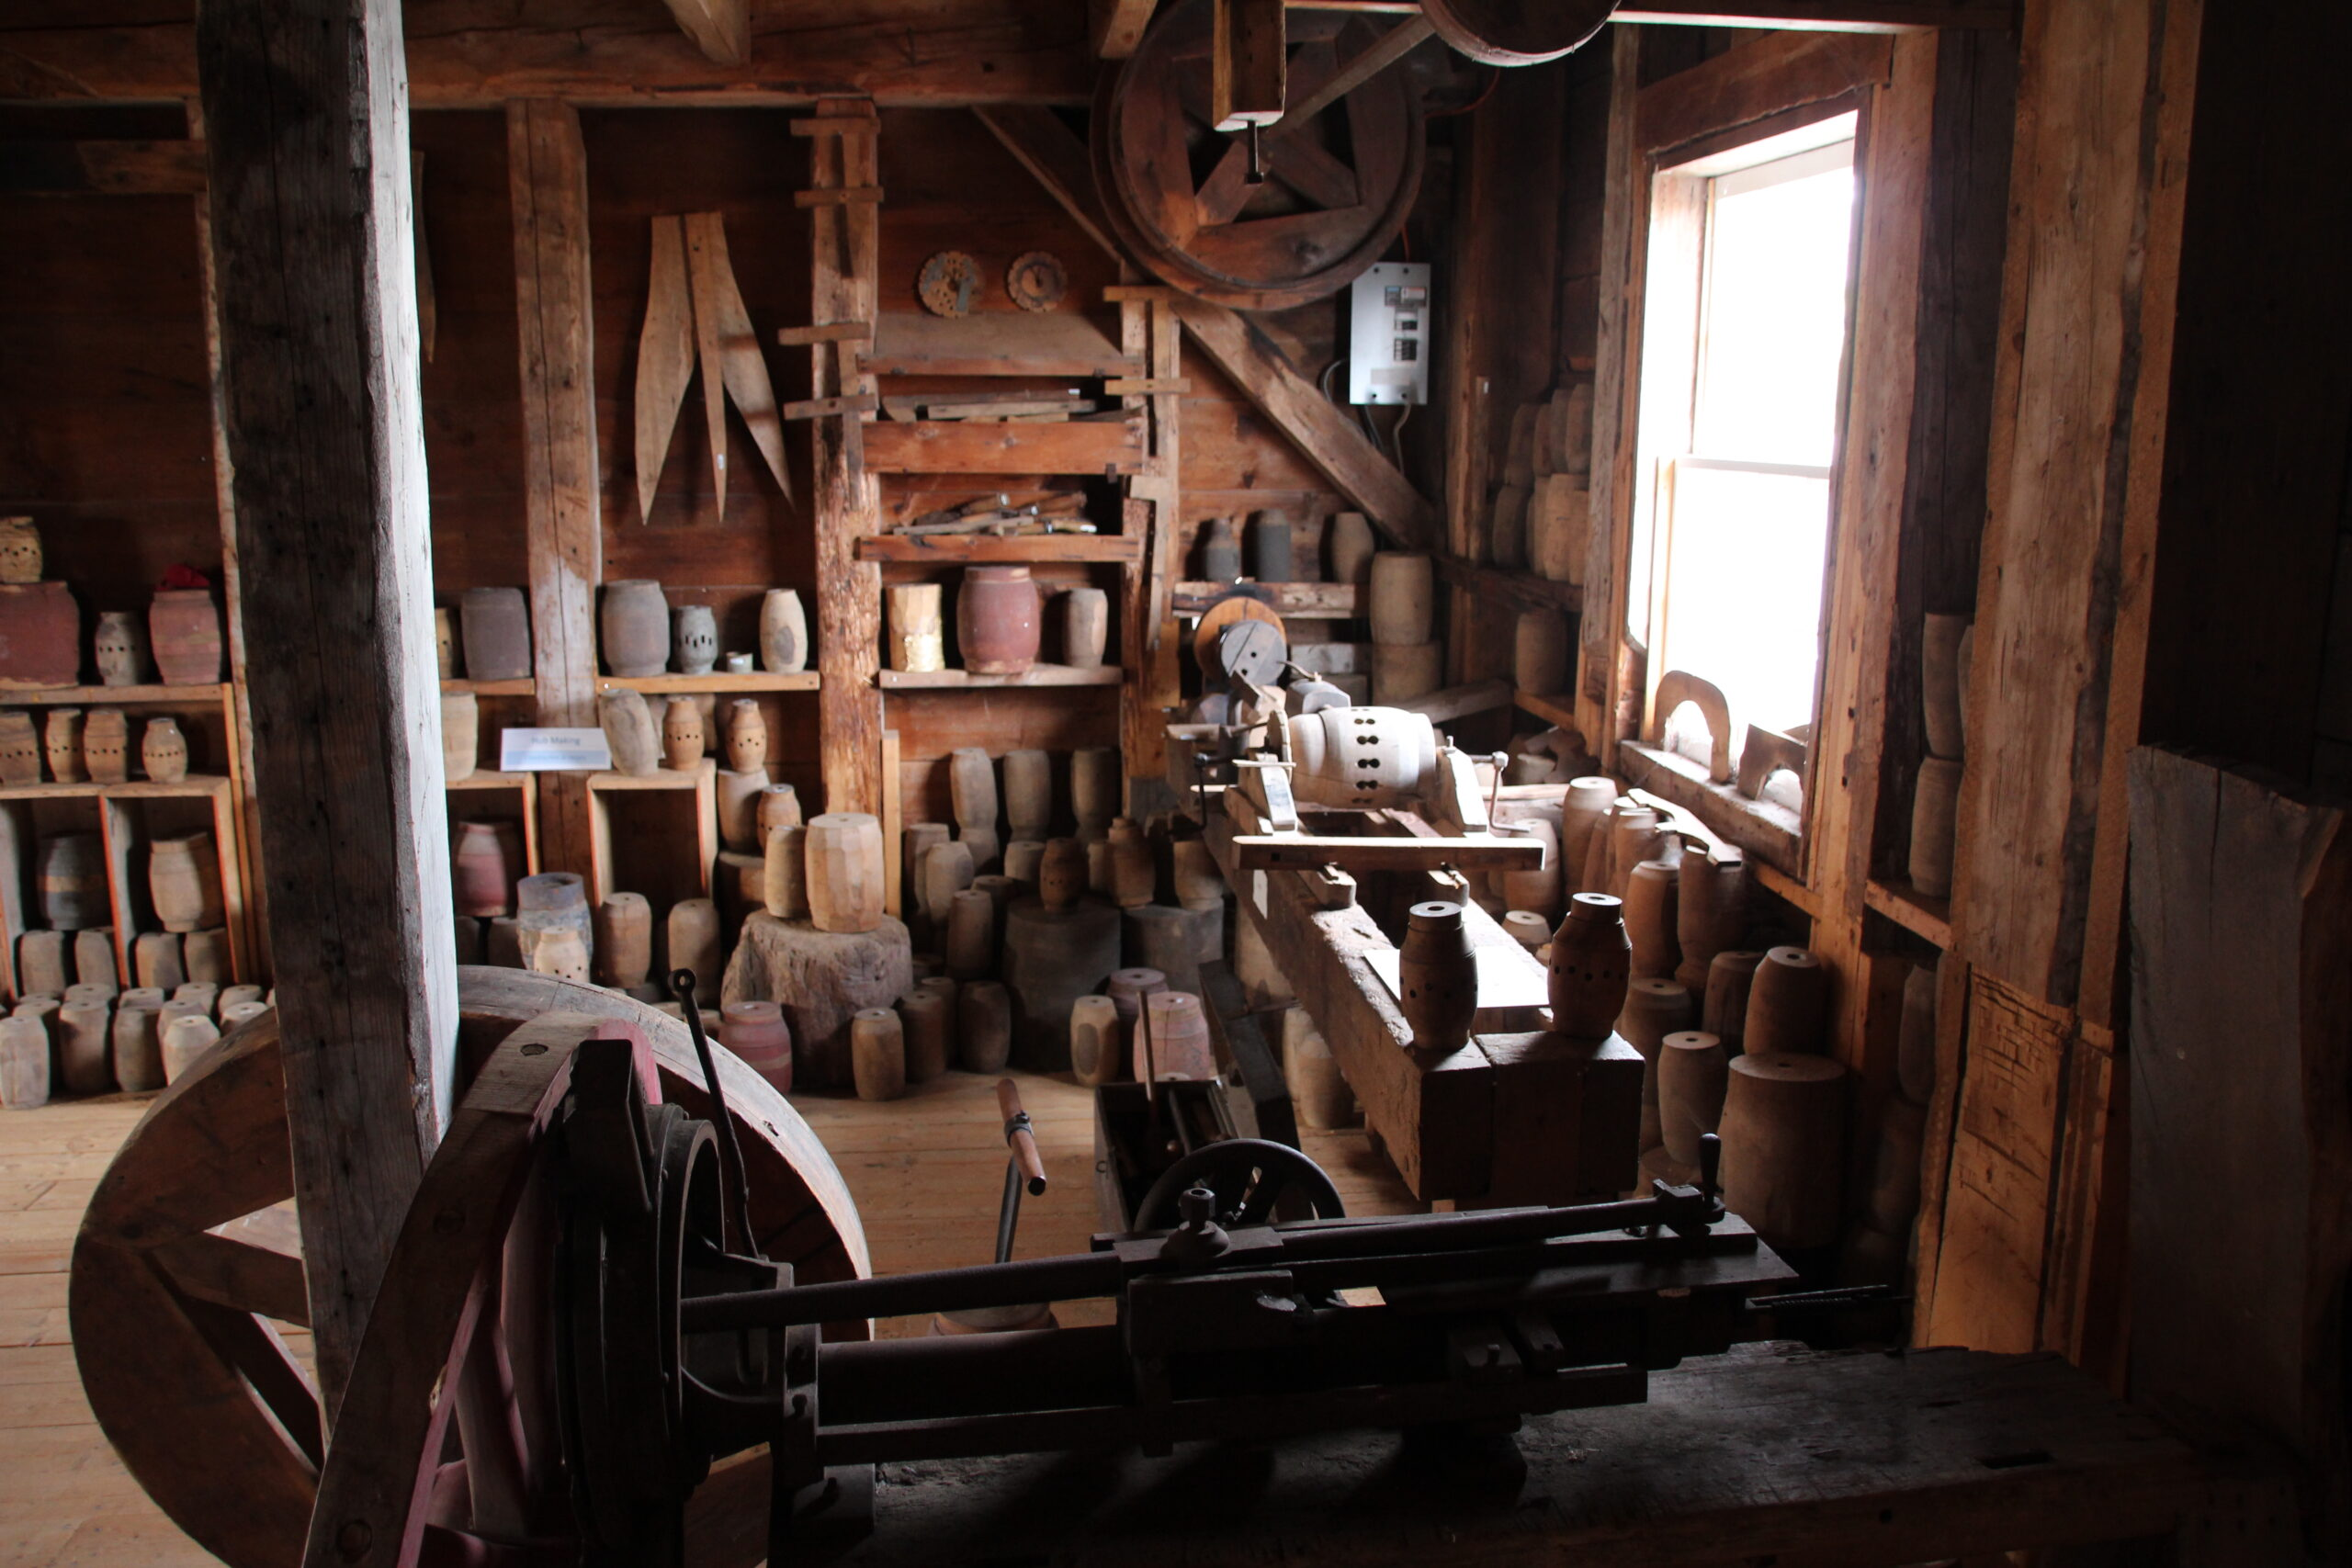 Photo of machine room at Carriage Factory Museum